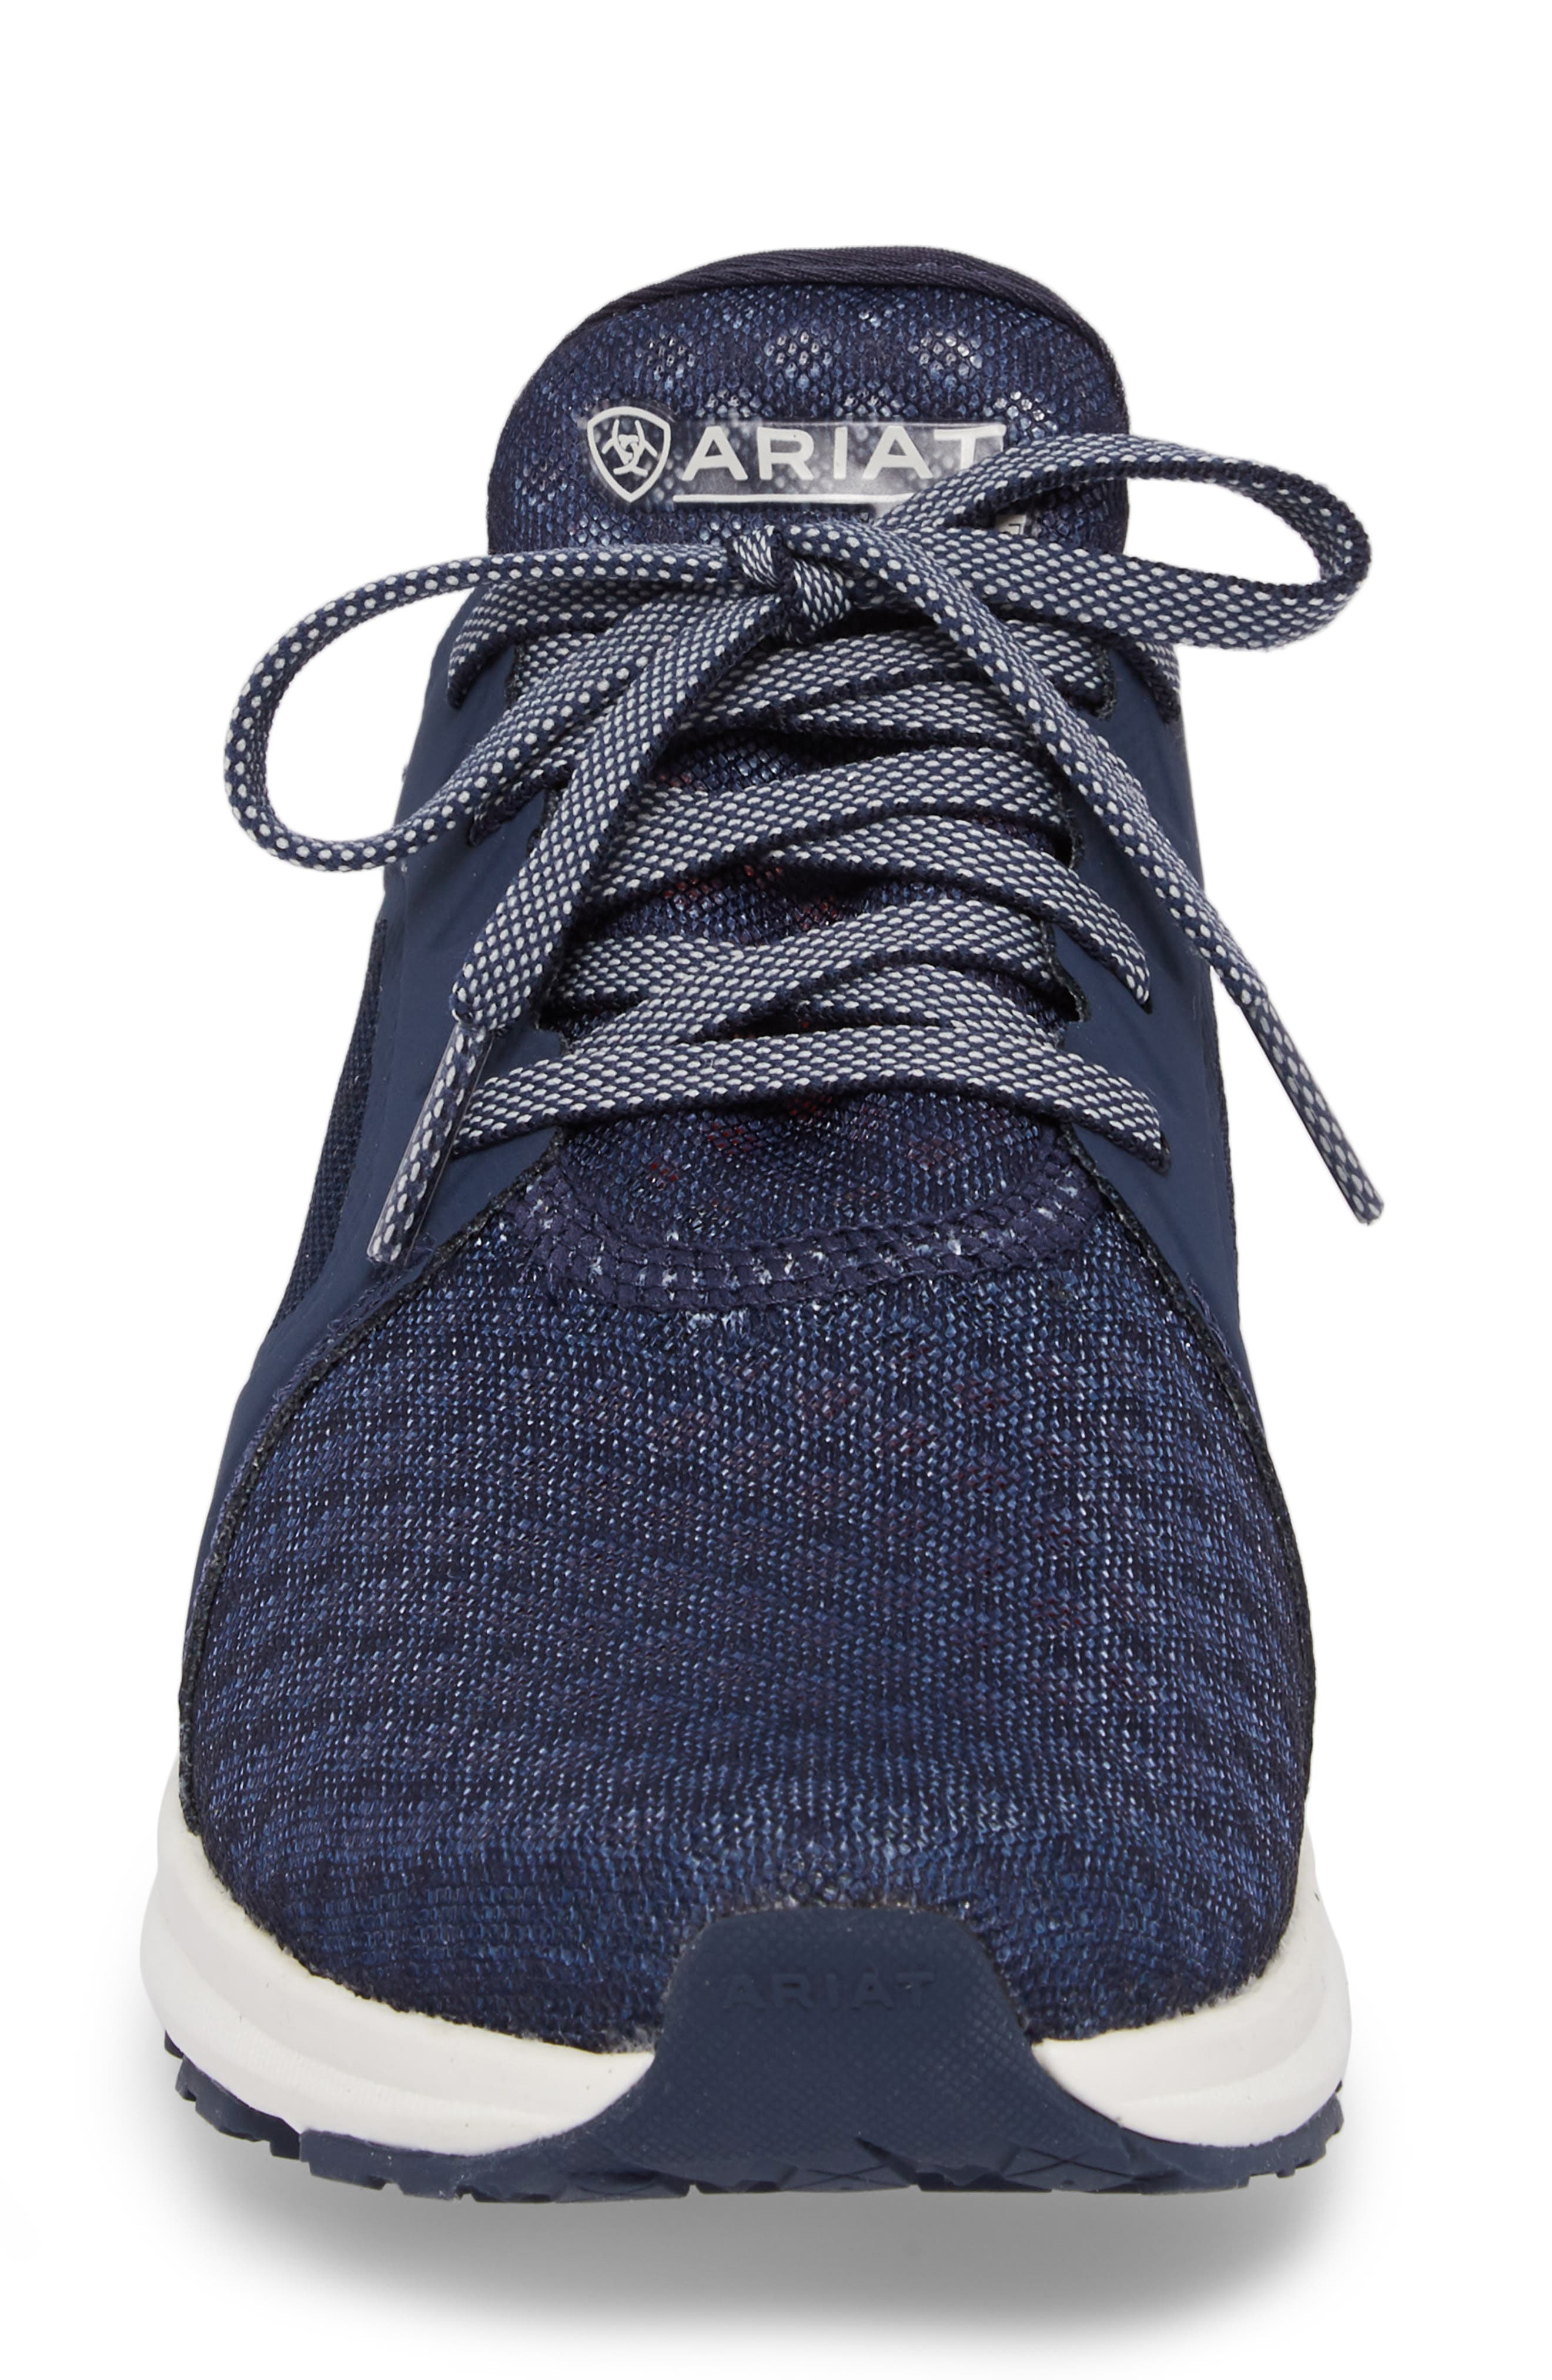 Fuse Print Sneaker,                             Alternate thumbnail 4, color,                             TEAM NAVY FABRIC